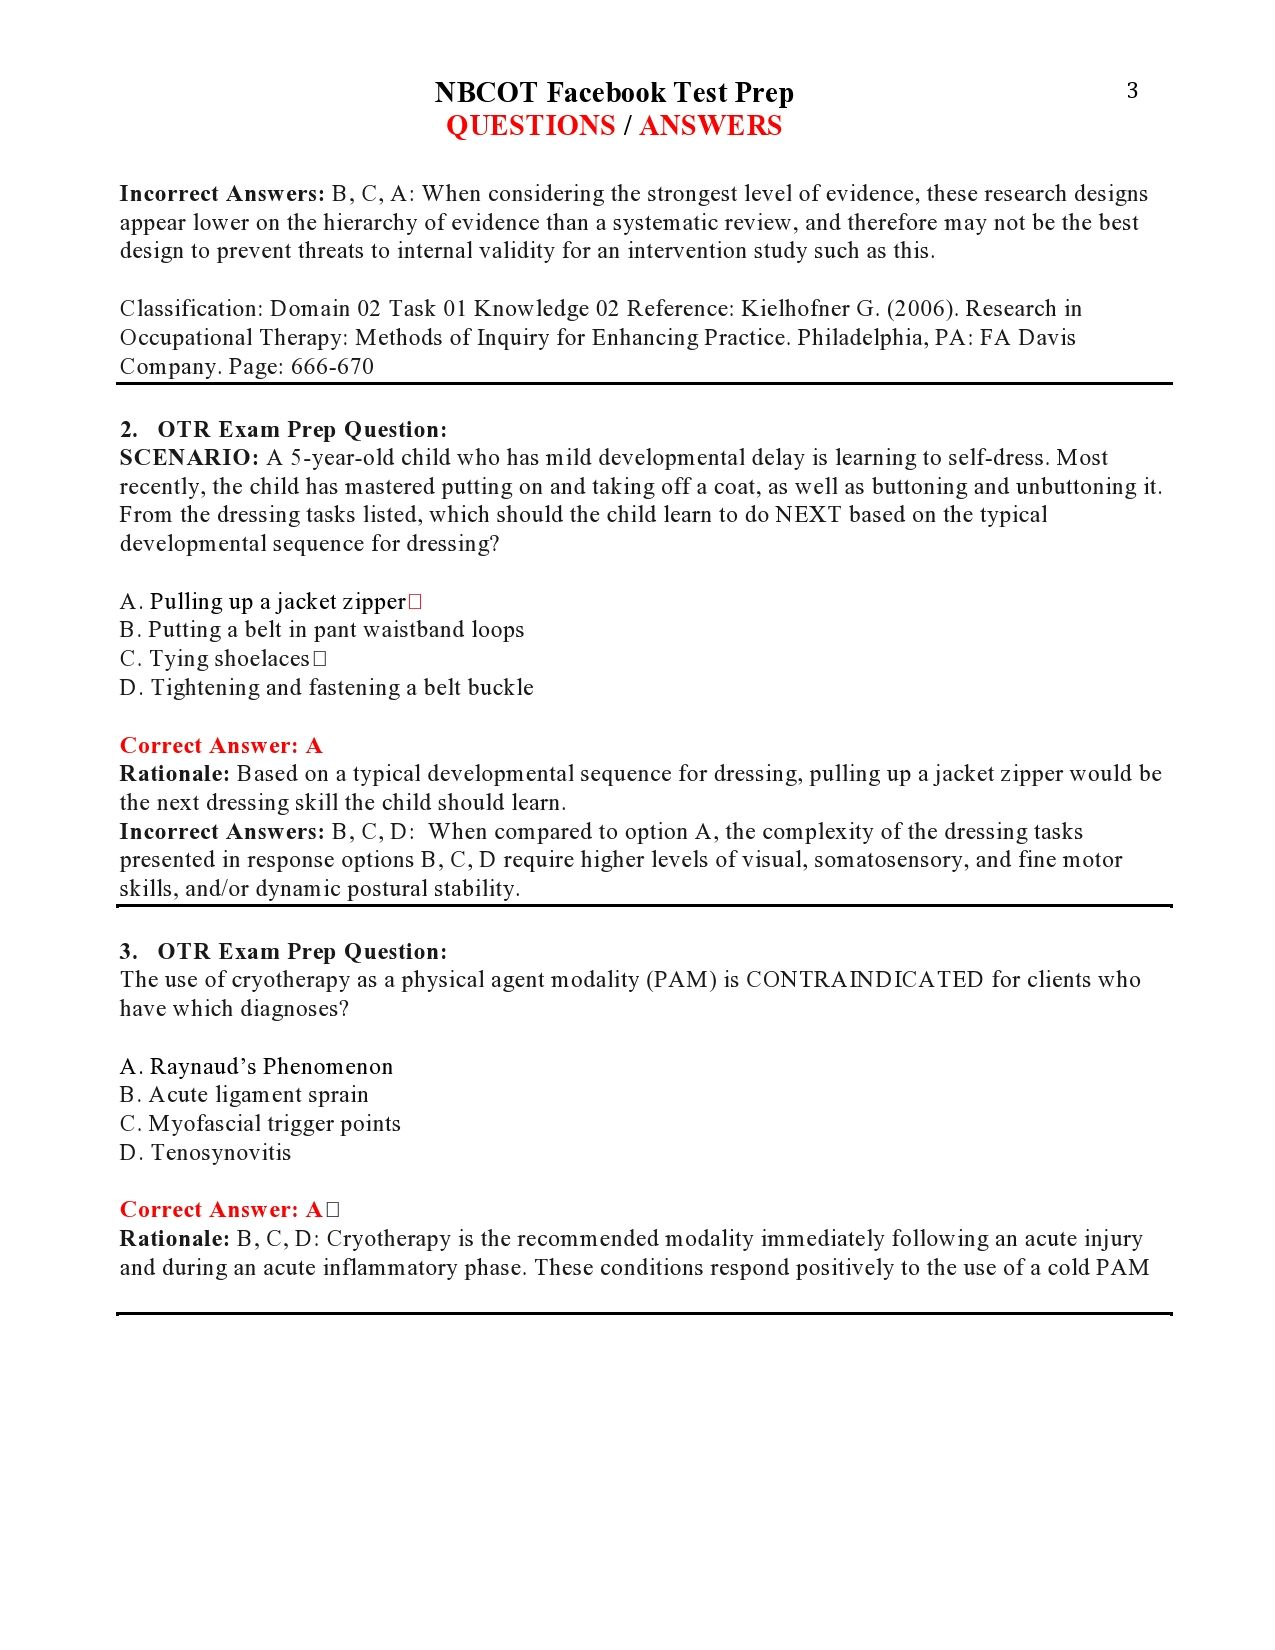 NBCOT Facebook Test Prep QUESTIONS / ANSWERS page 3 | NBCOT